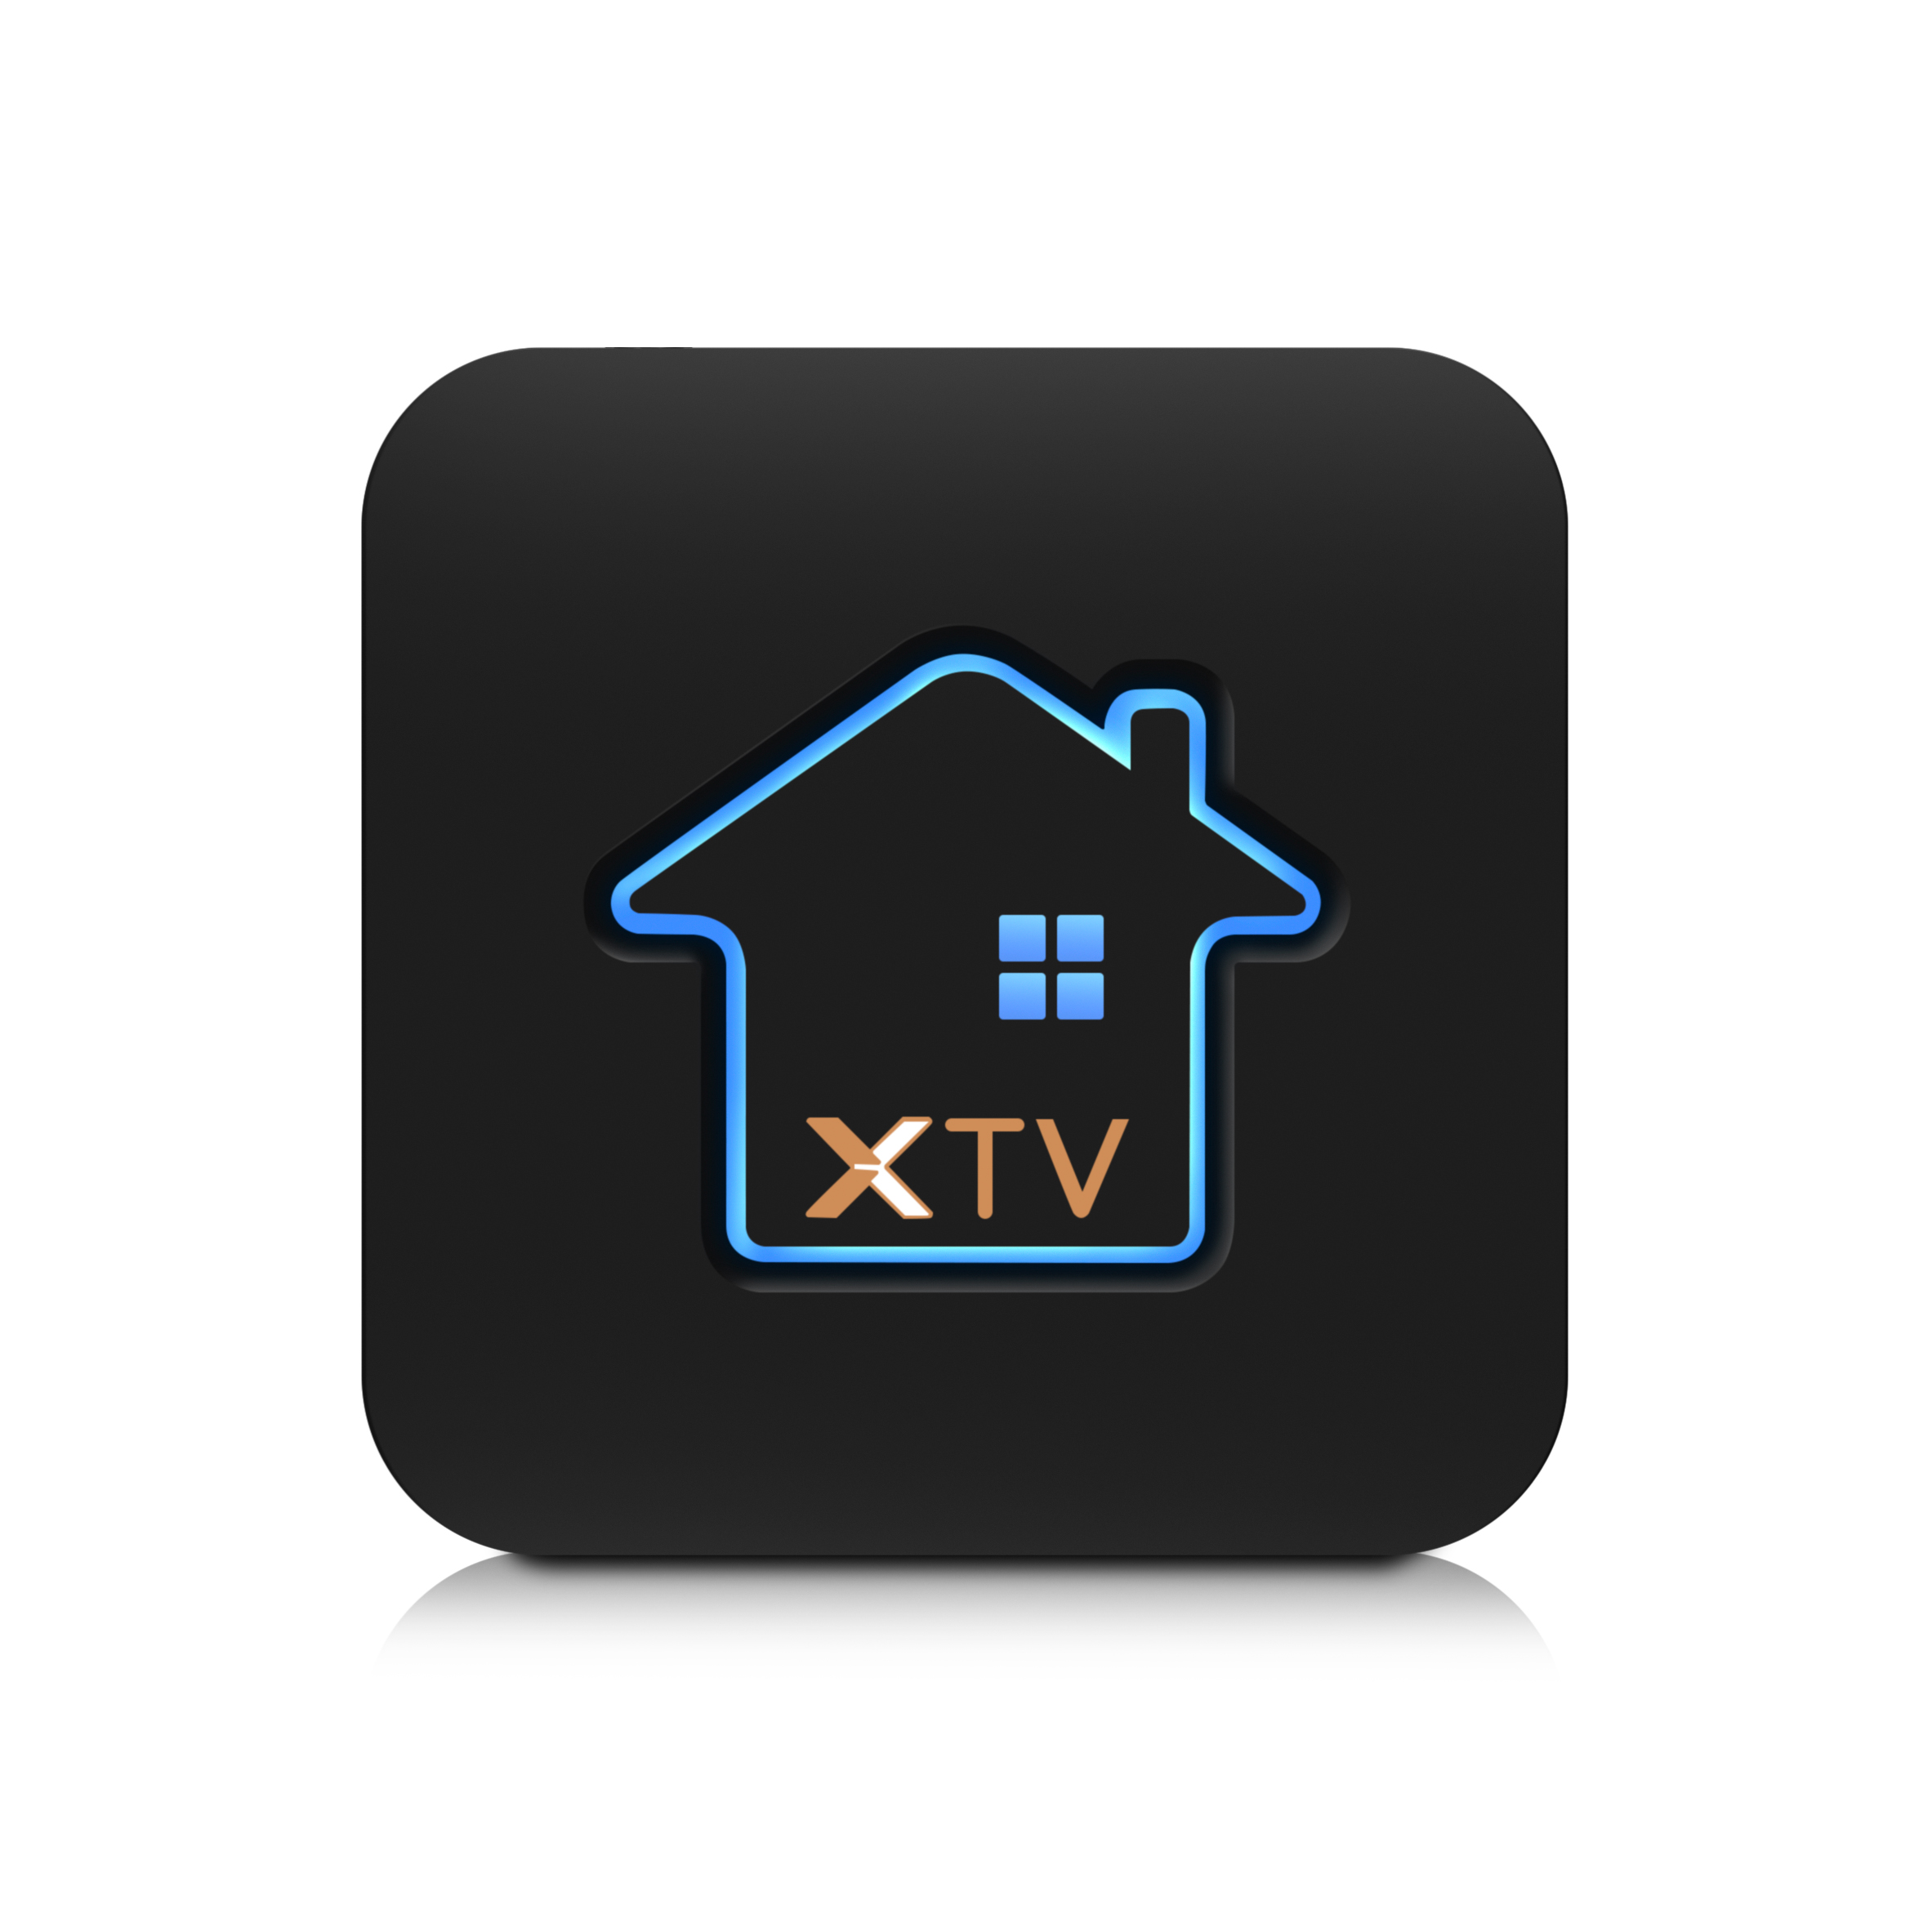 OTA Stalker iptv android set top meelo XTV tv box <strong>Software</strong> update set top box